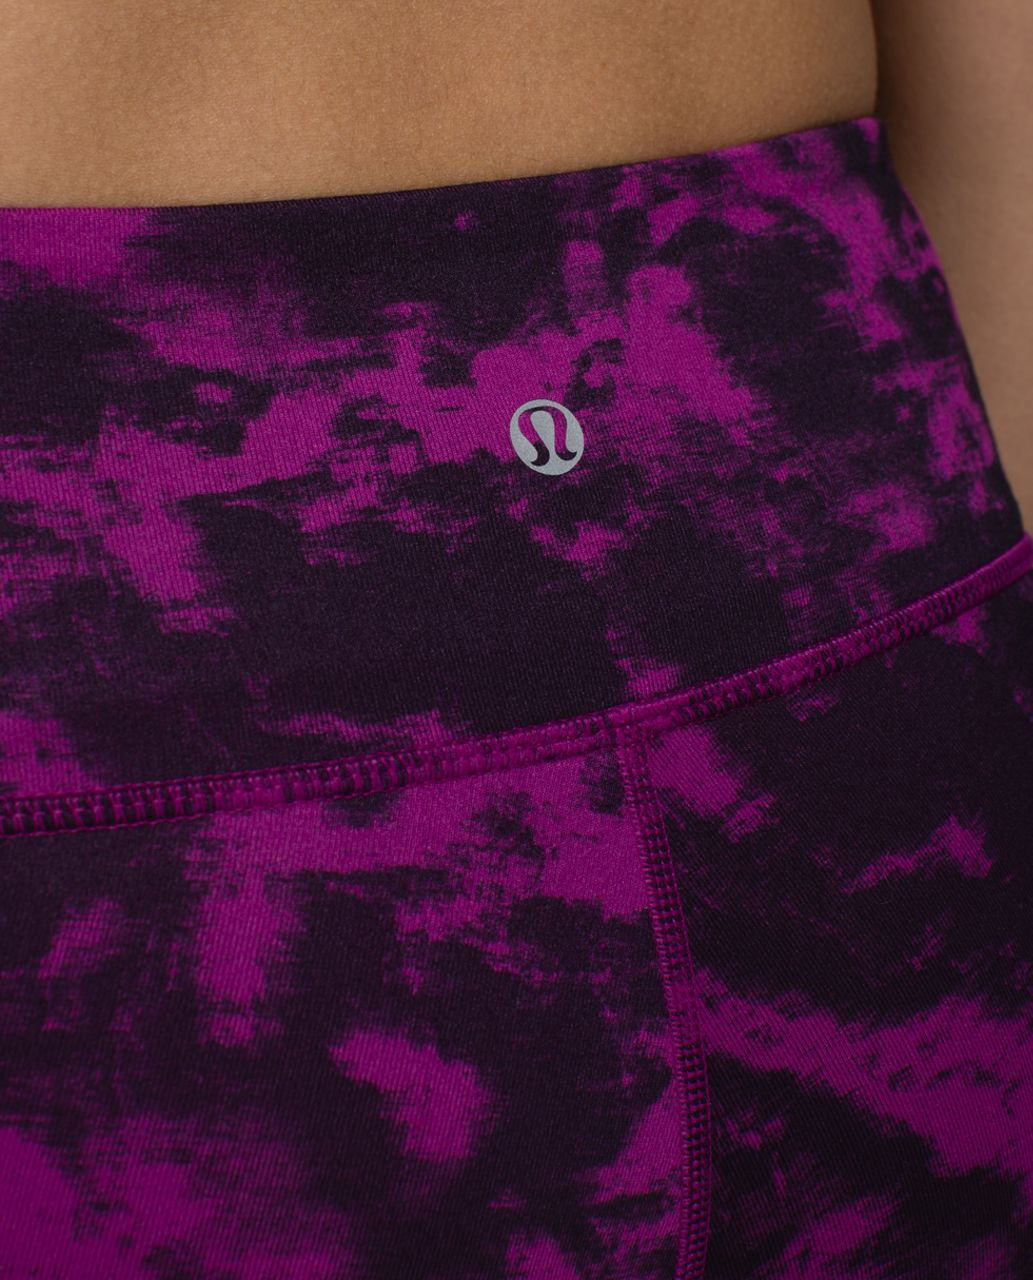 Lululemon Wunder Under Crop II *Full-On Luon - Breezie Regal Plum Black